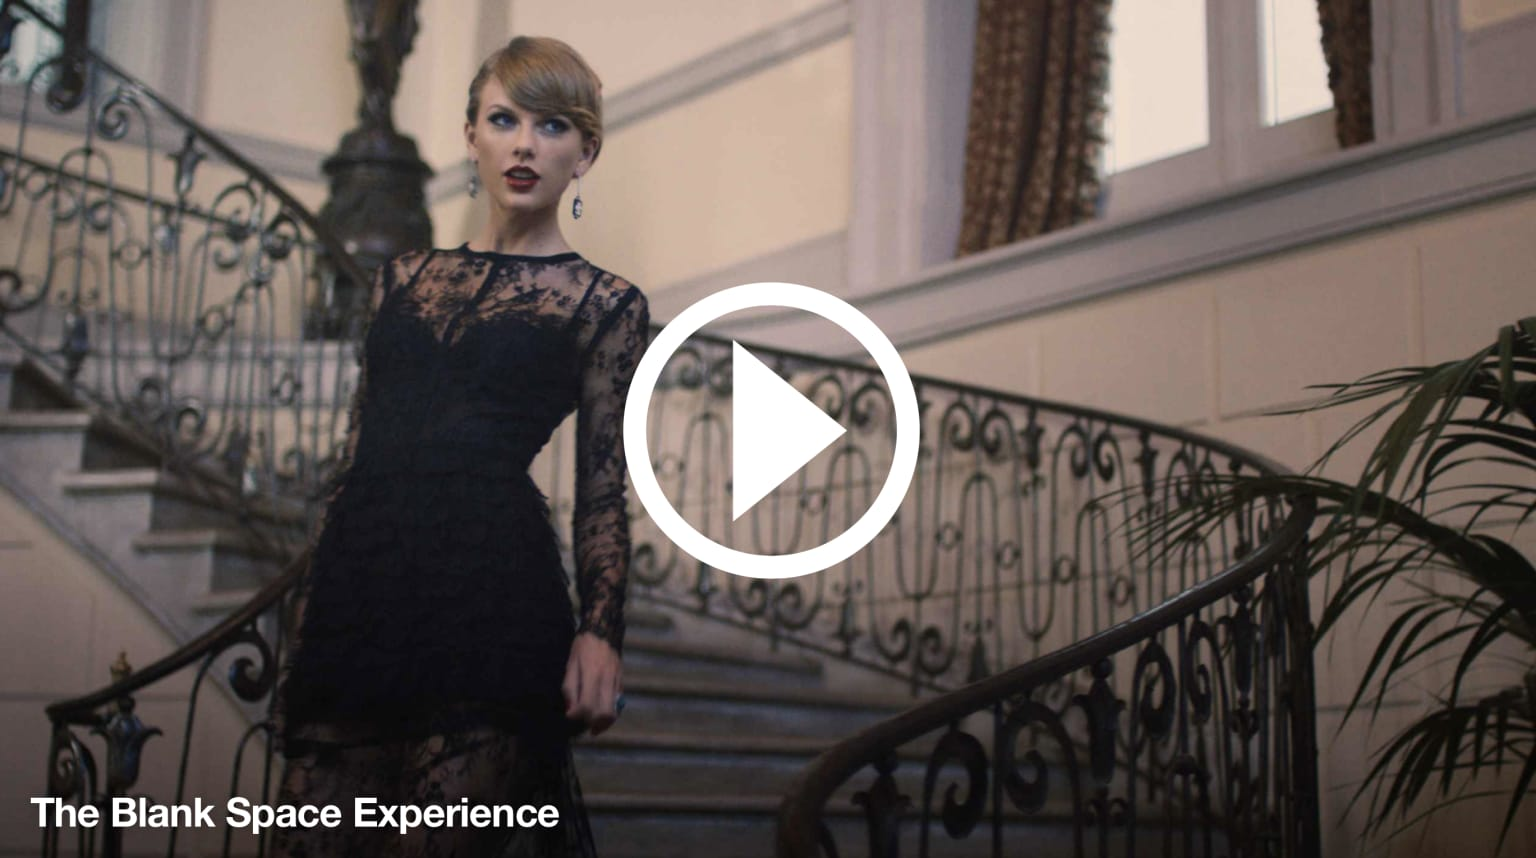 Taylor Swift Blank Space Experience